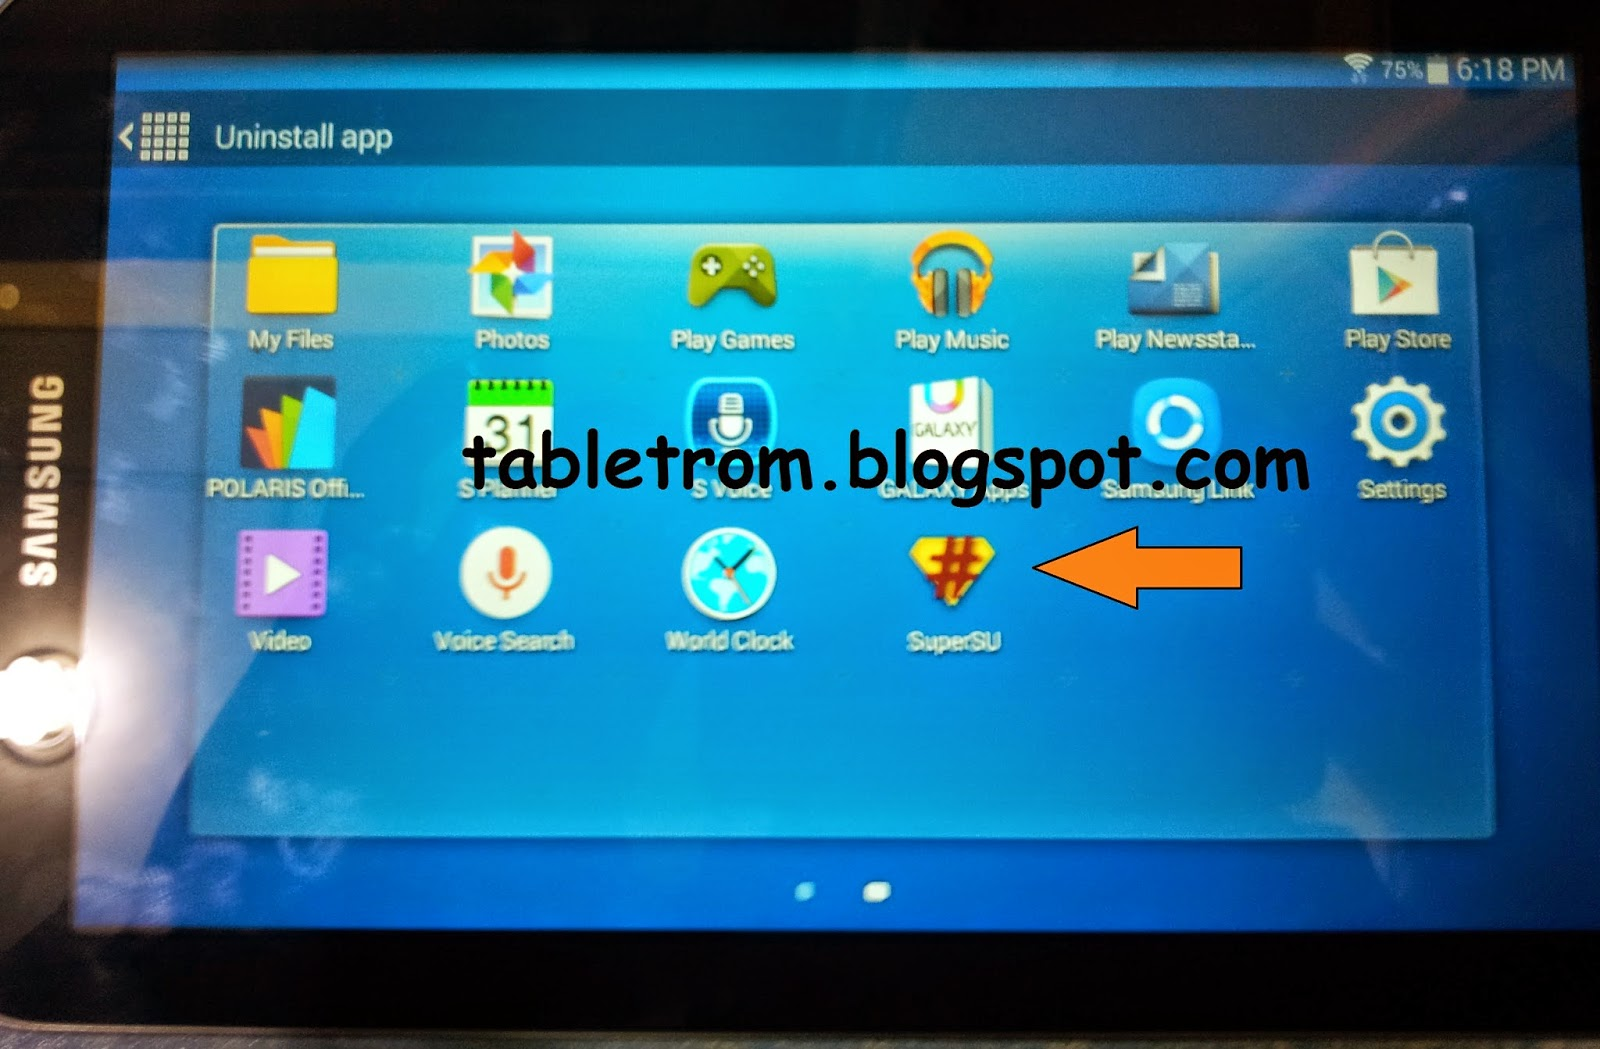 Tablet samsung galaxy 3 root the samsung galaxy tab 3 - How To Root Samsung Tablet And Smartphones